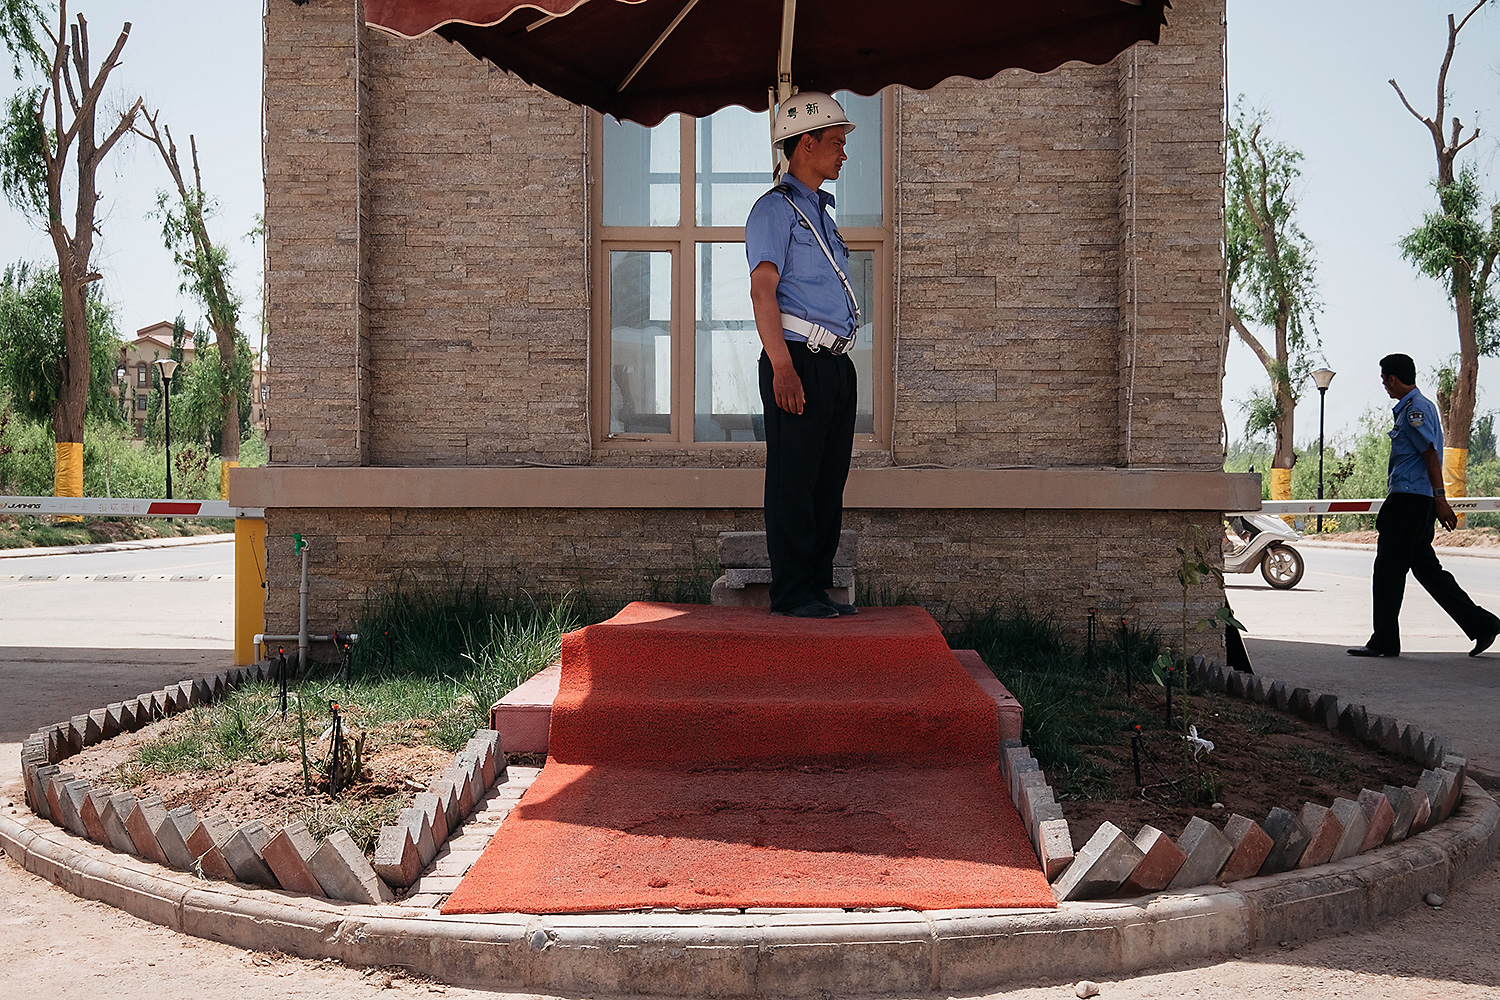 Uighur guards patrol an entrance gate of the South Xinjiang Venice villa district, which caters to wealthy residents, many of whom are Han.